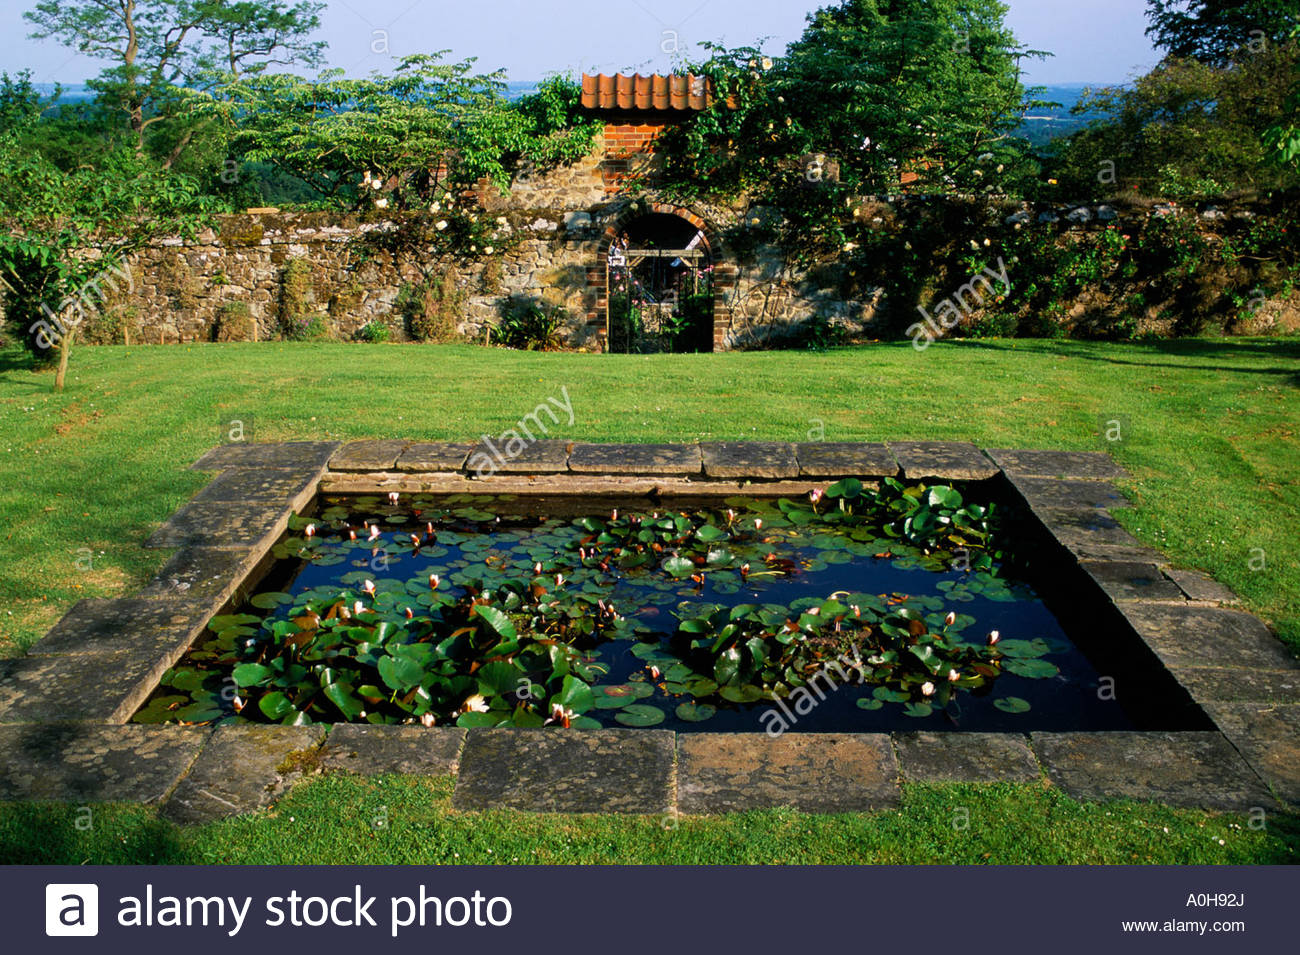 Private Garden Kent Formal Square Pond With Waterlilies In Lawn Stock Photo Royalty Free Image